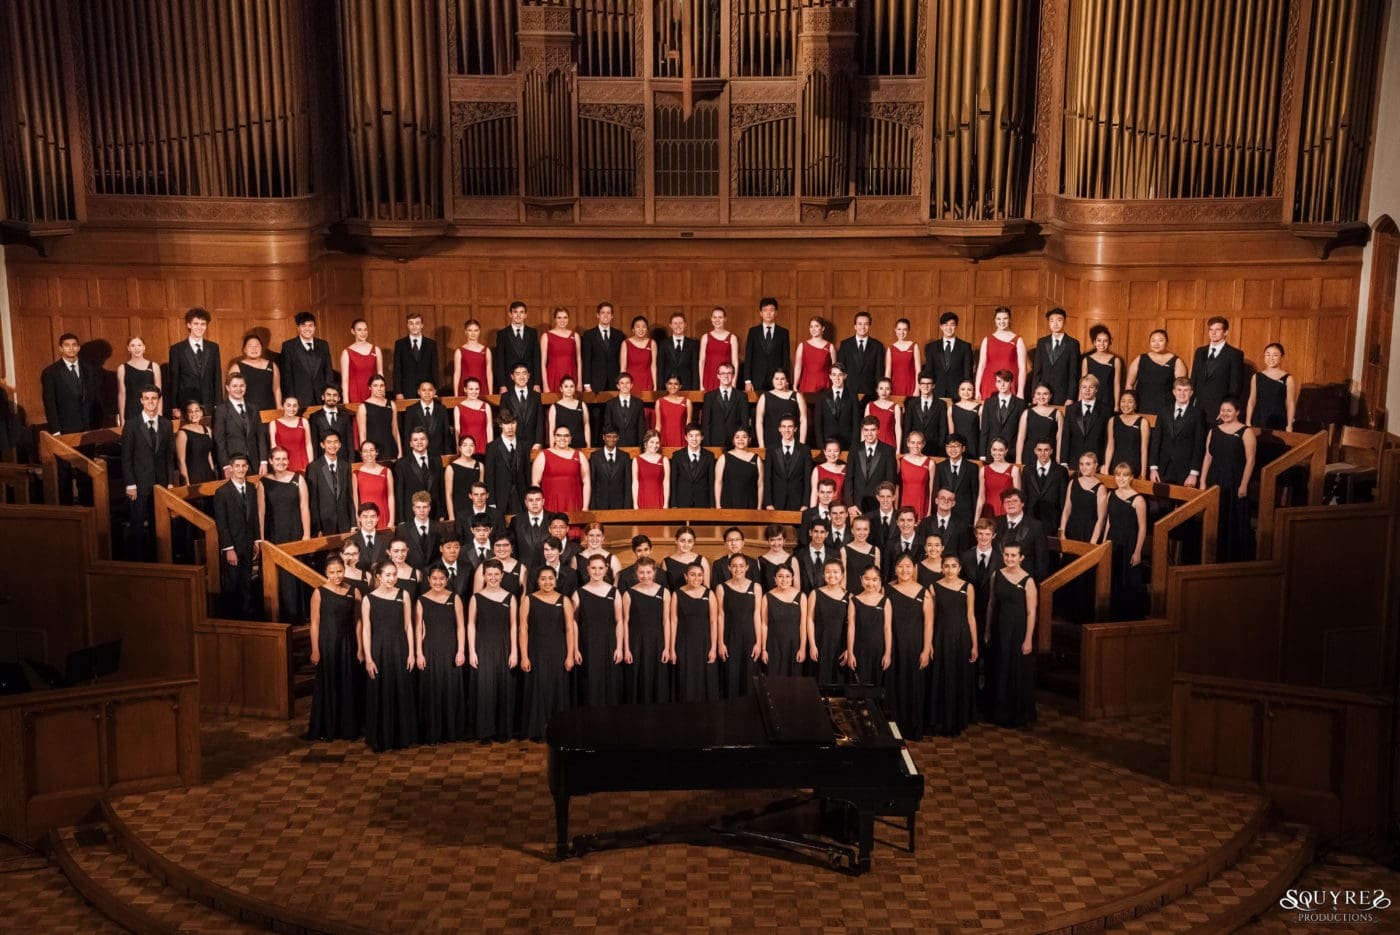 LCHS Choral Artists sing in France: Concert Repertoire